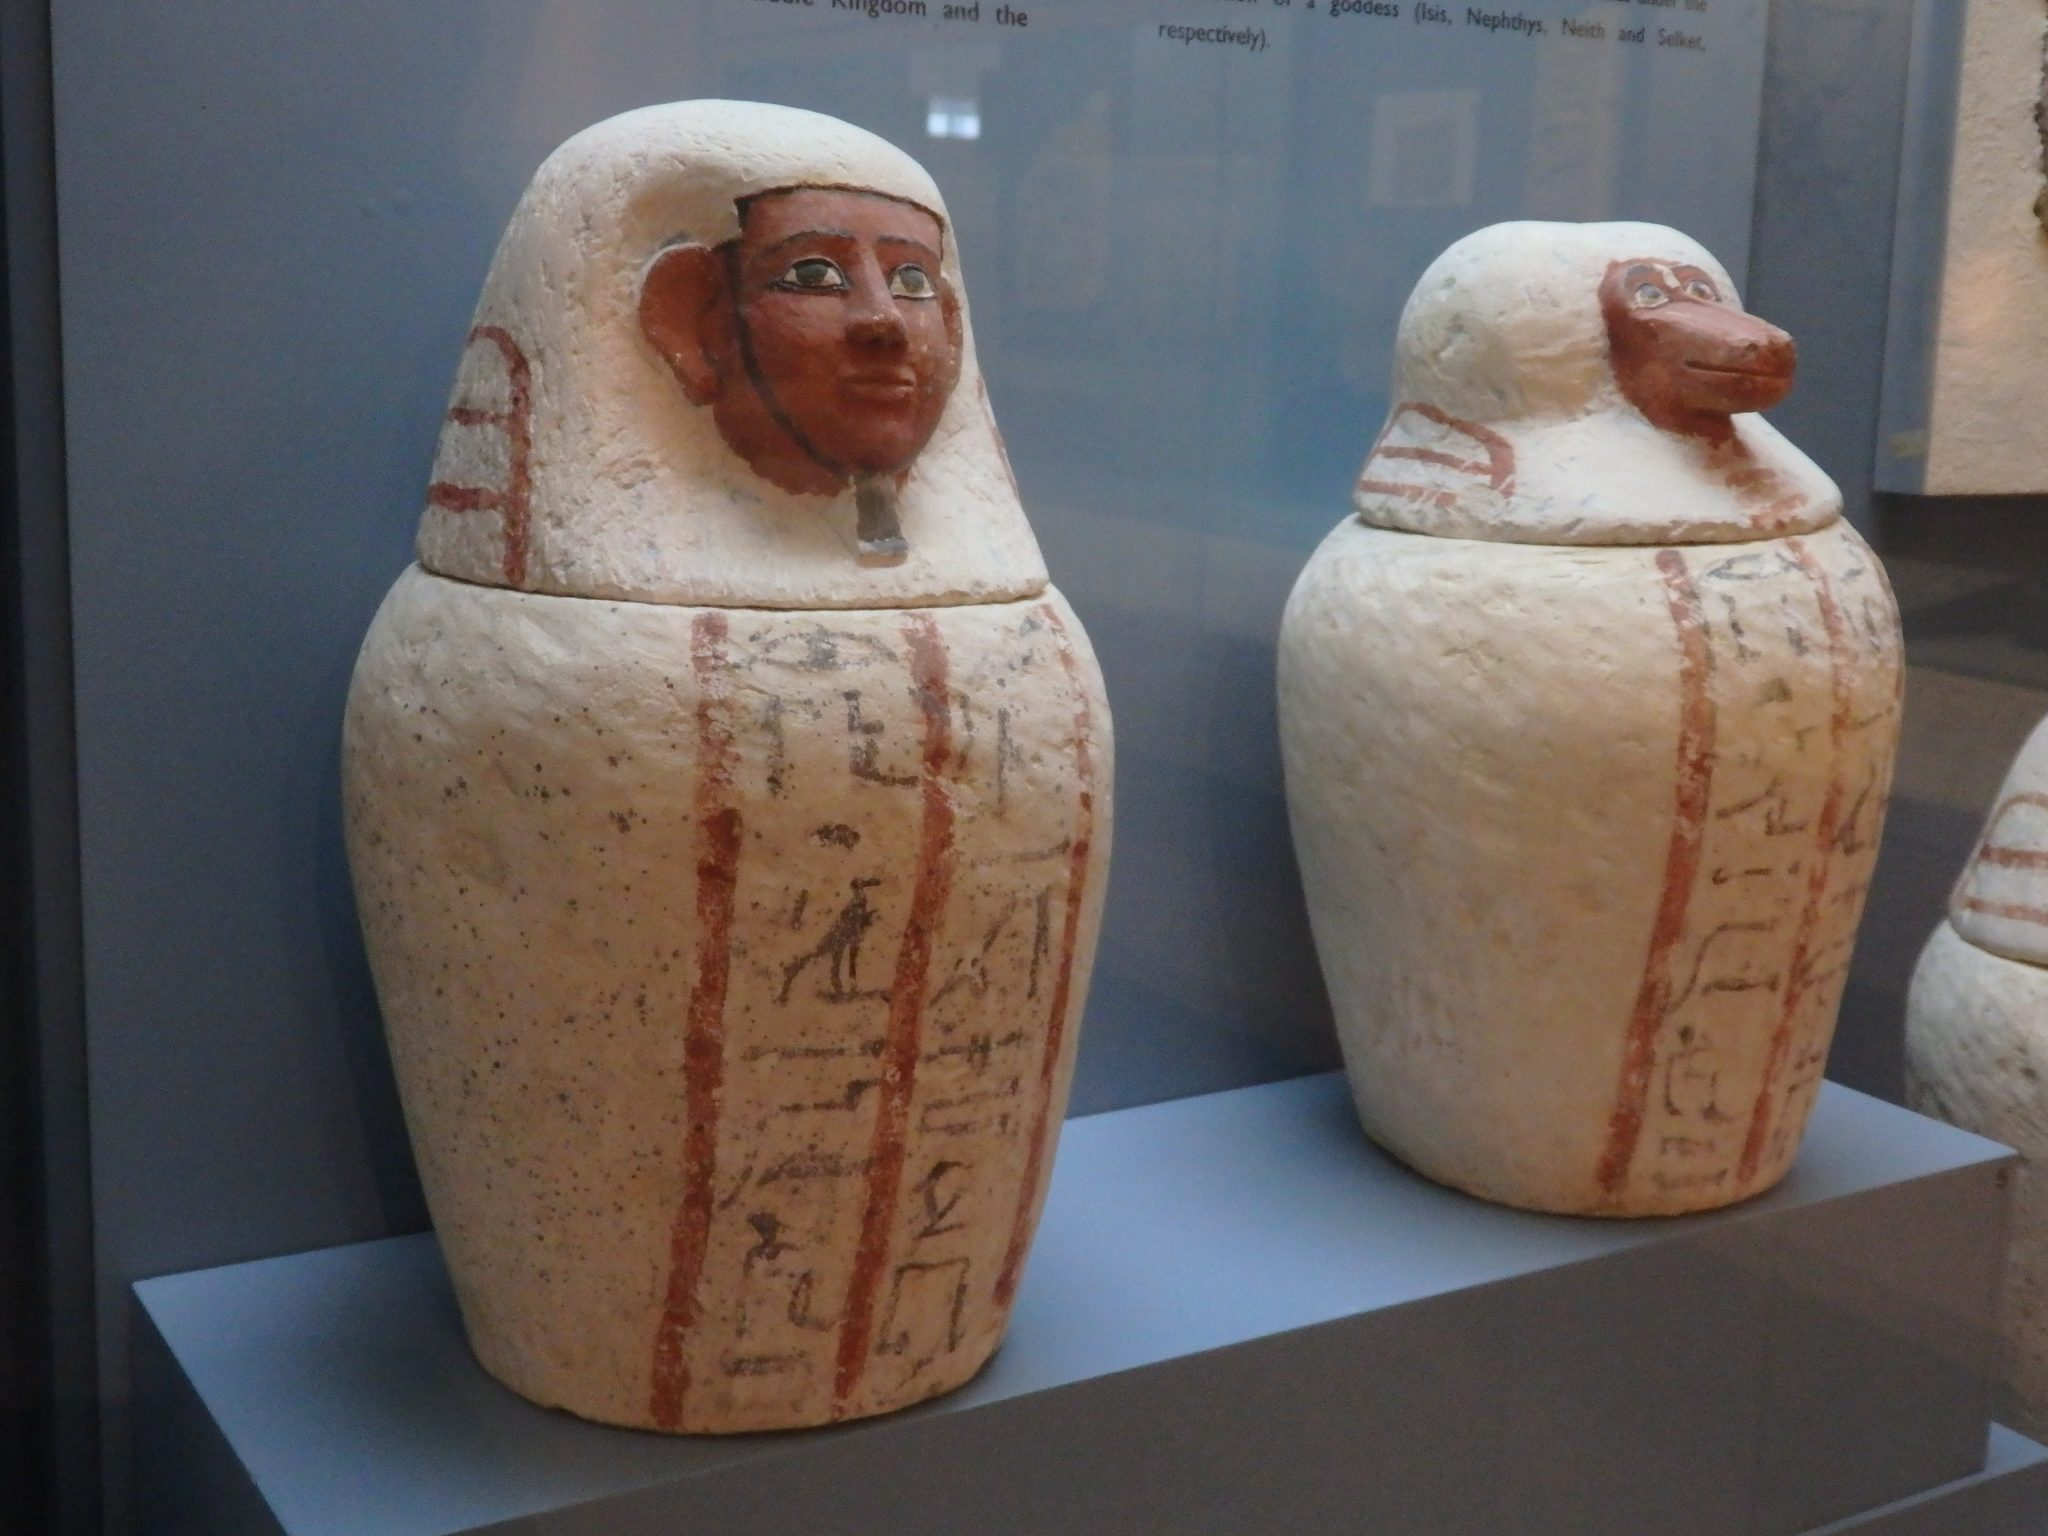 Canopic jars from 19th-20th Egyptian dynasties, 1307-1070 BCE, in the Bible Lands Museum, Jerusalem